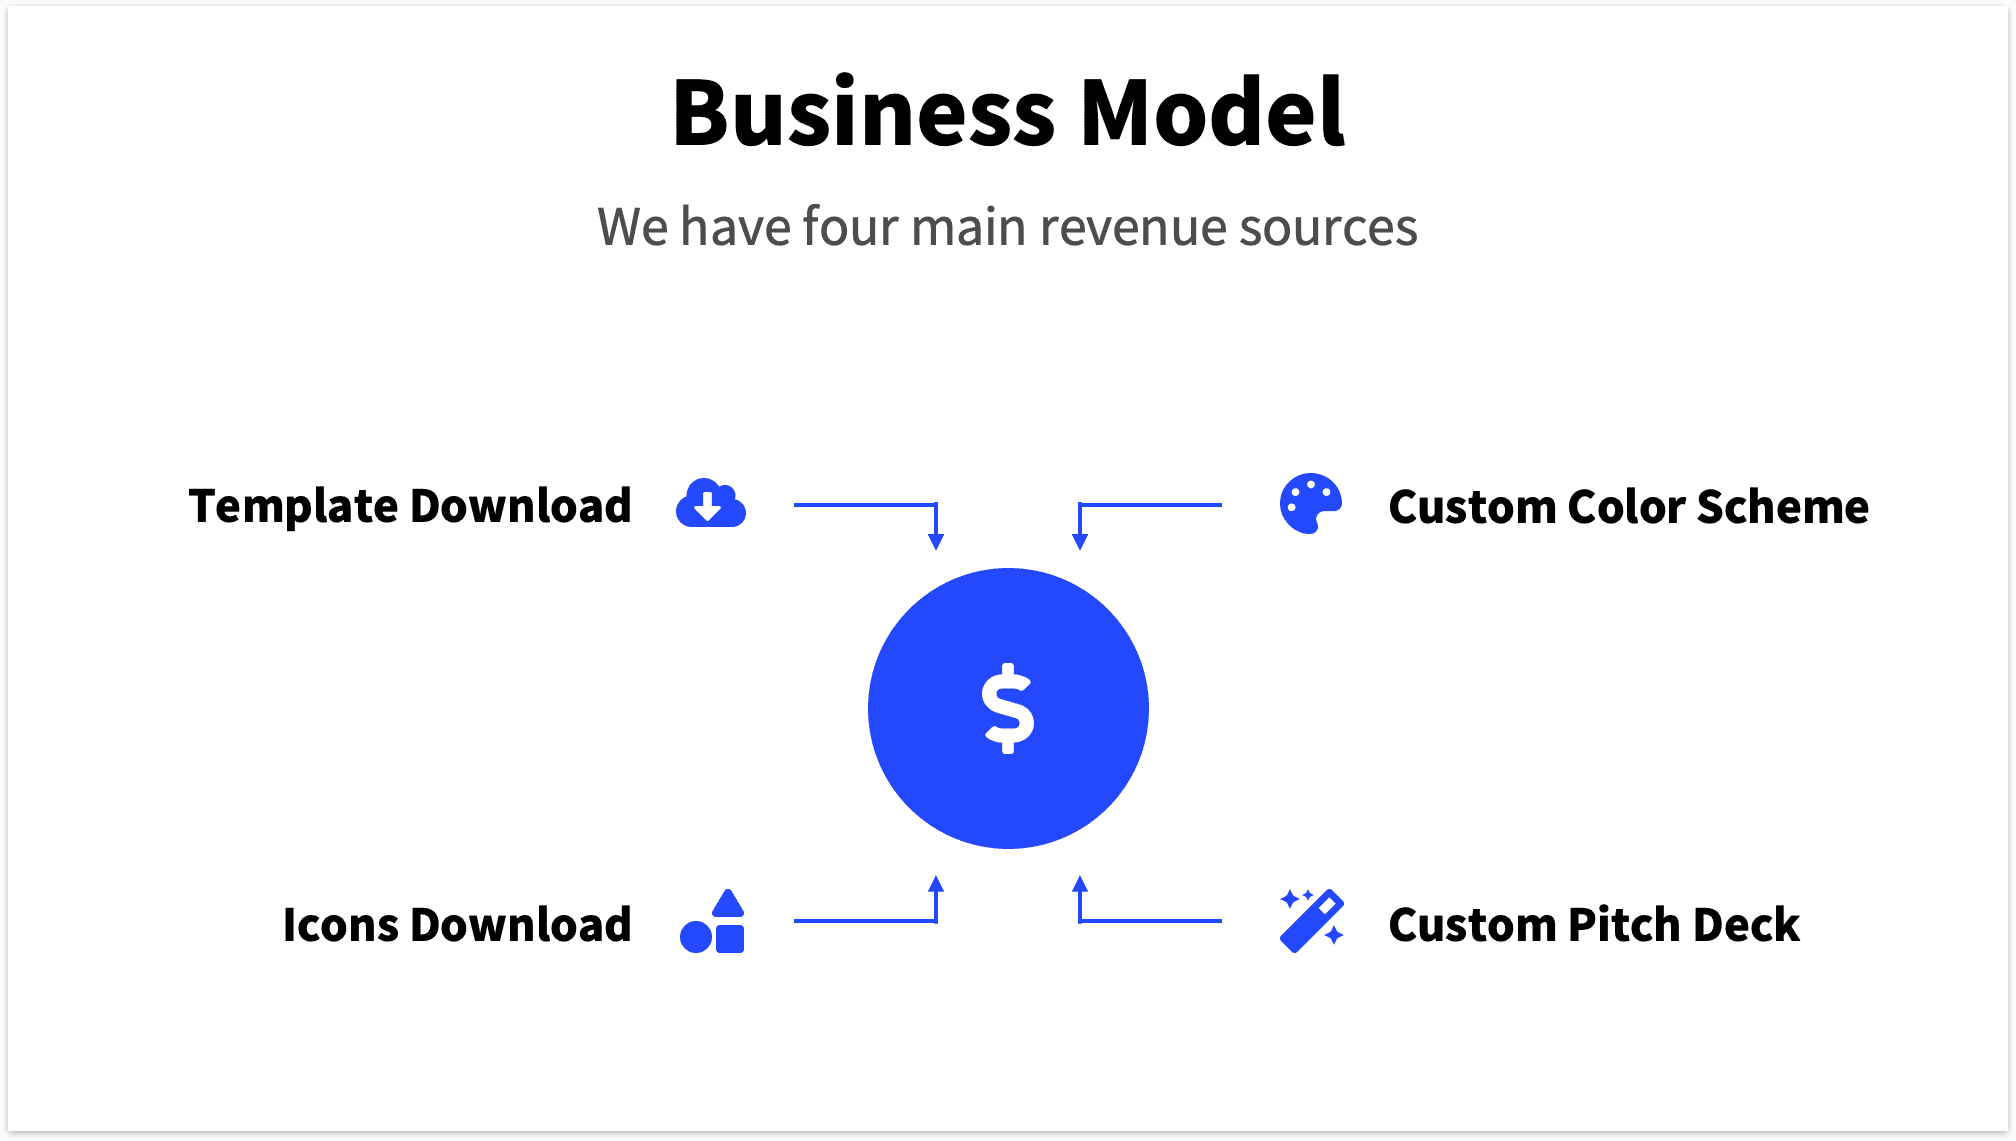 Business model slide with central point of revenue stream.